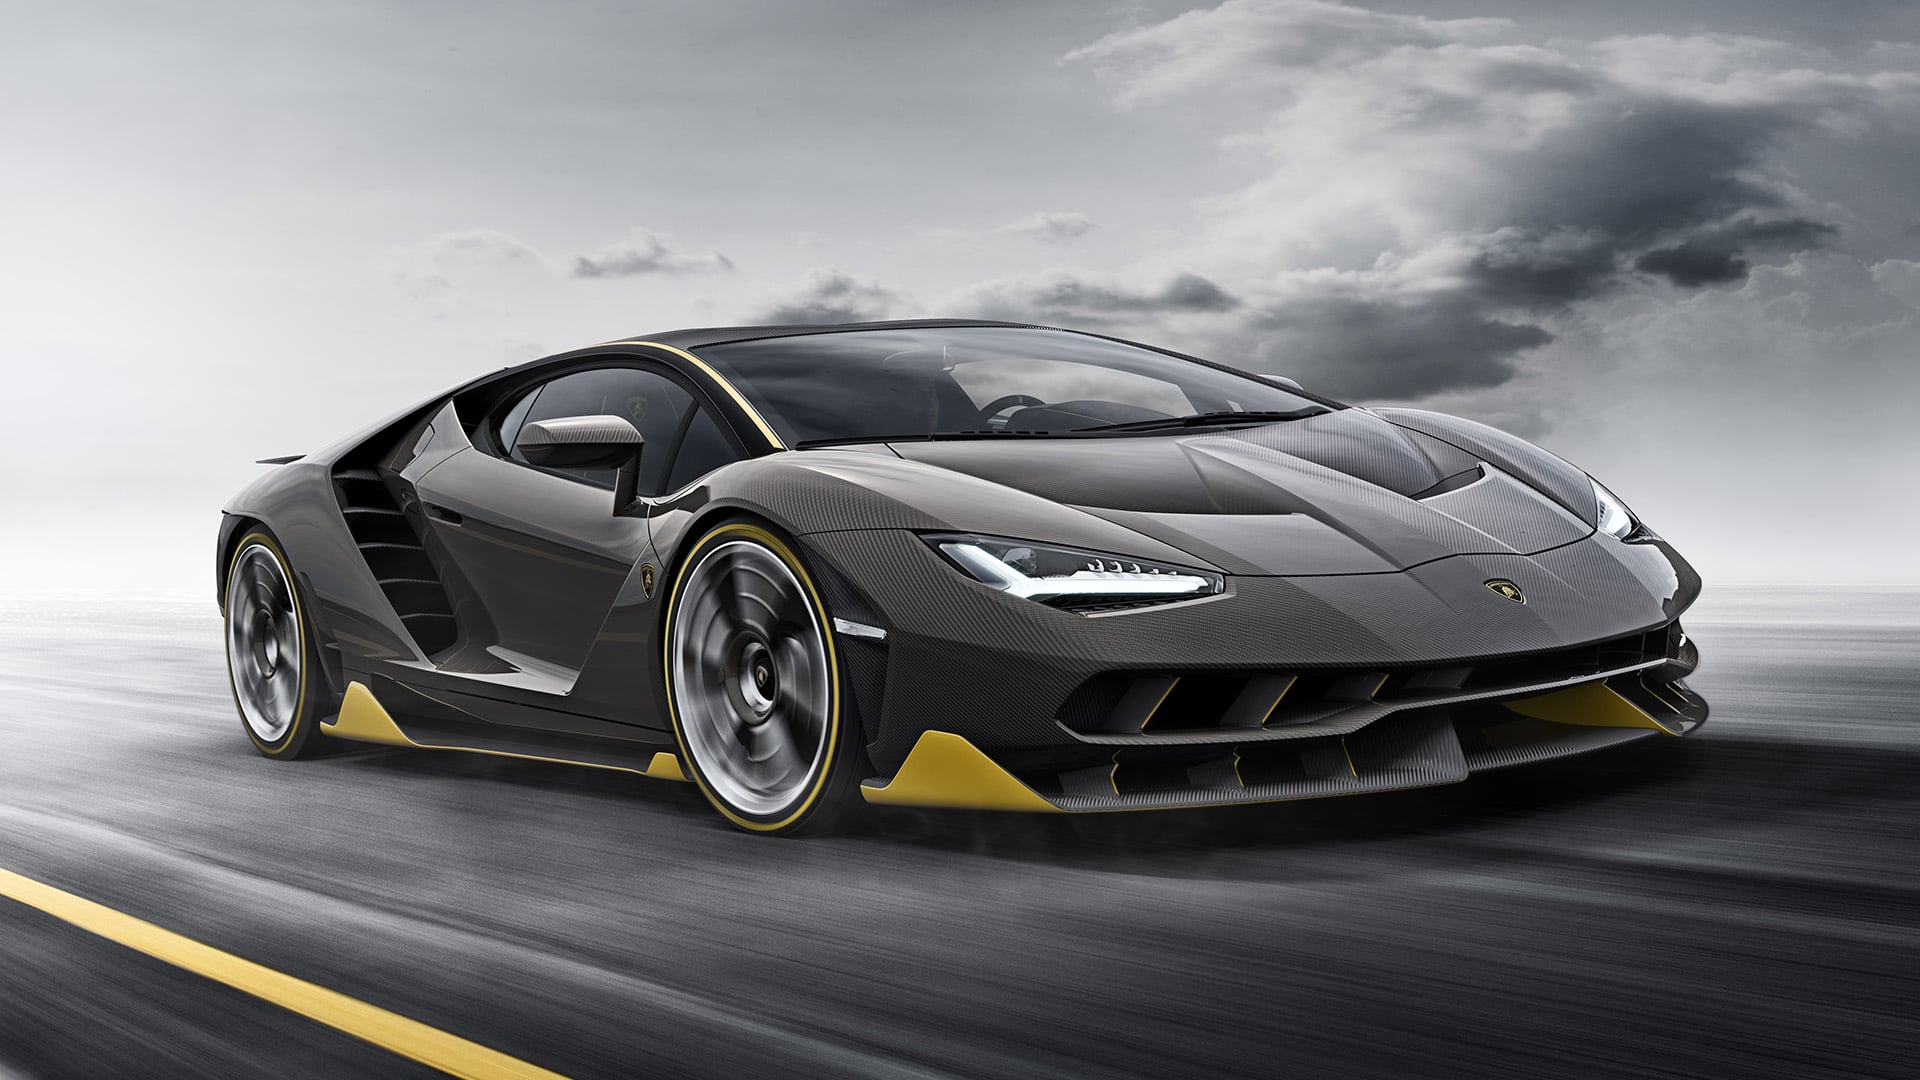 LAMBORGHINI. Home · Models · One Off · Centenario